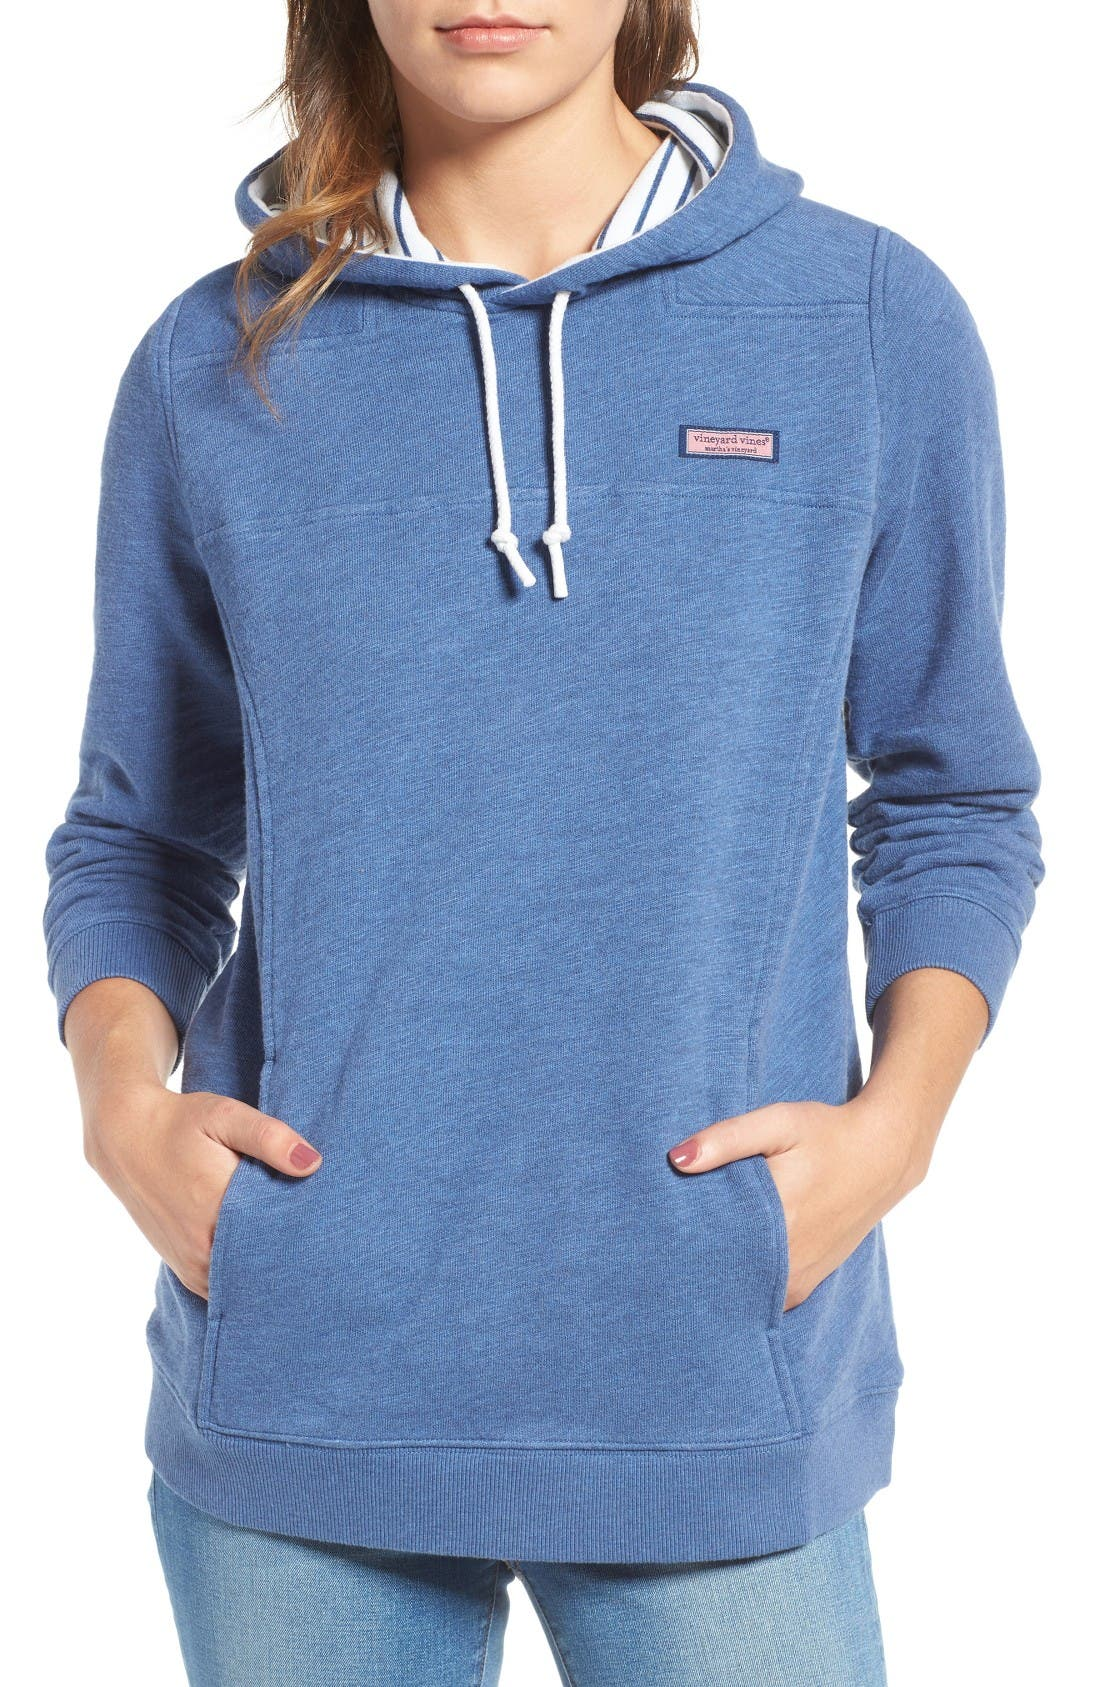 Alternate Image 1 Selected - Vineyard Vines Hoodie